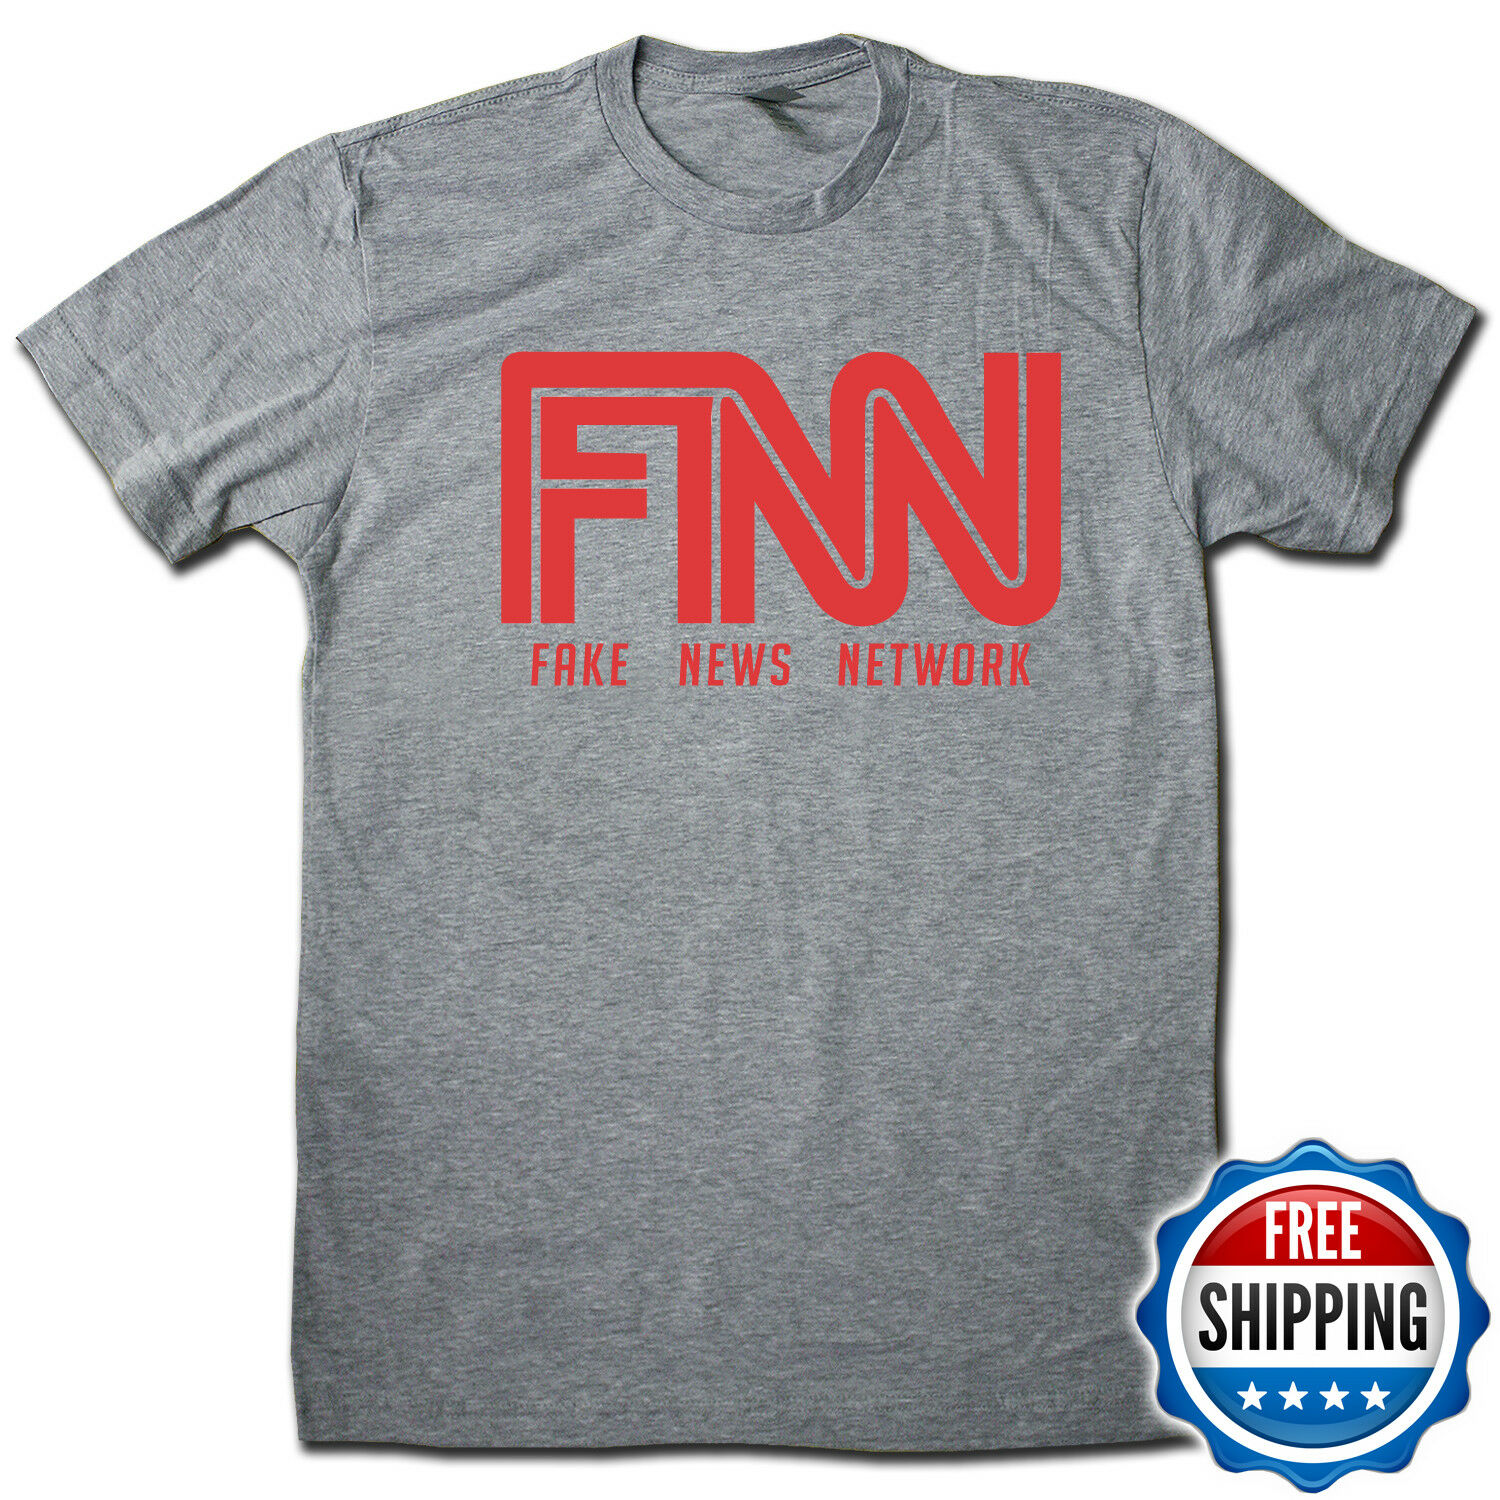 9ca2a7bcaf Details about FNN Fake News Network T-Shirt! Hilarious & Funny Premium  Cotton Pop Culture Tee!